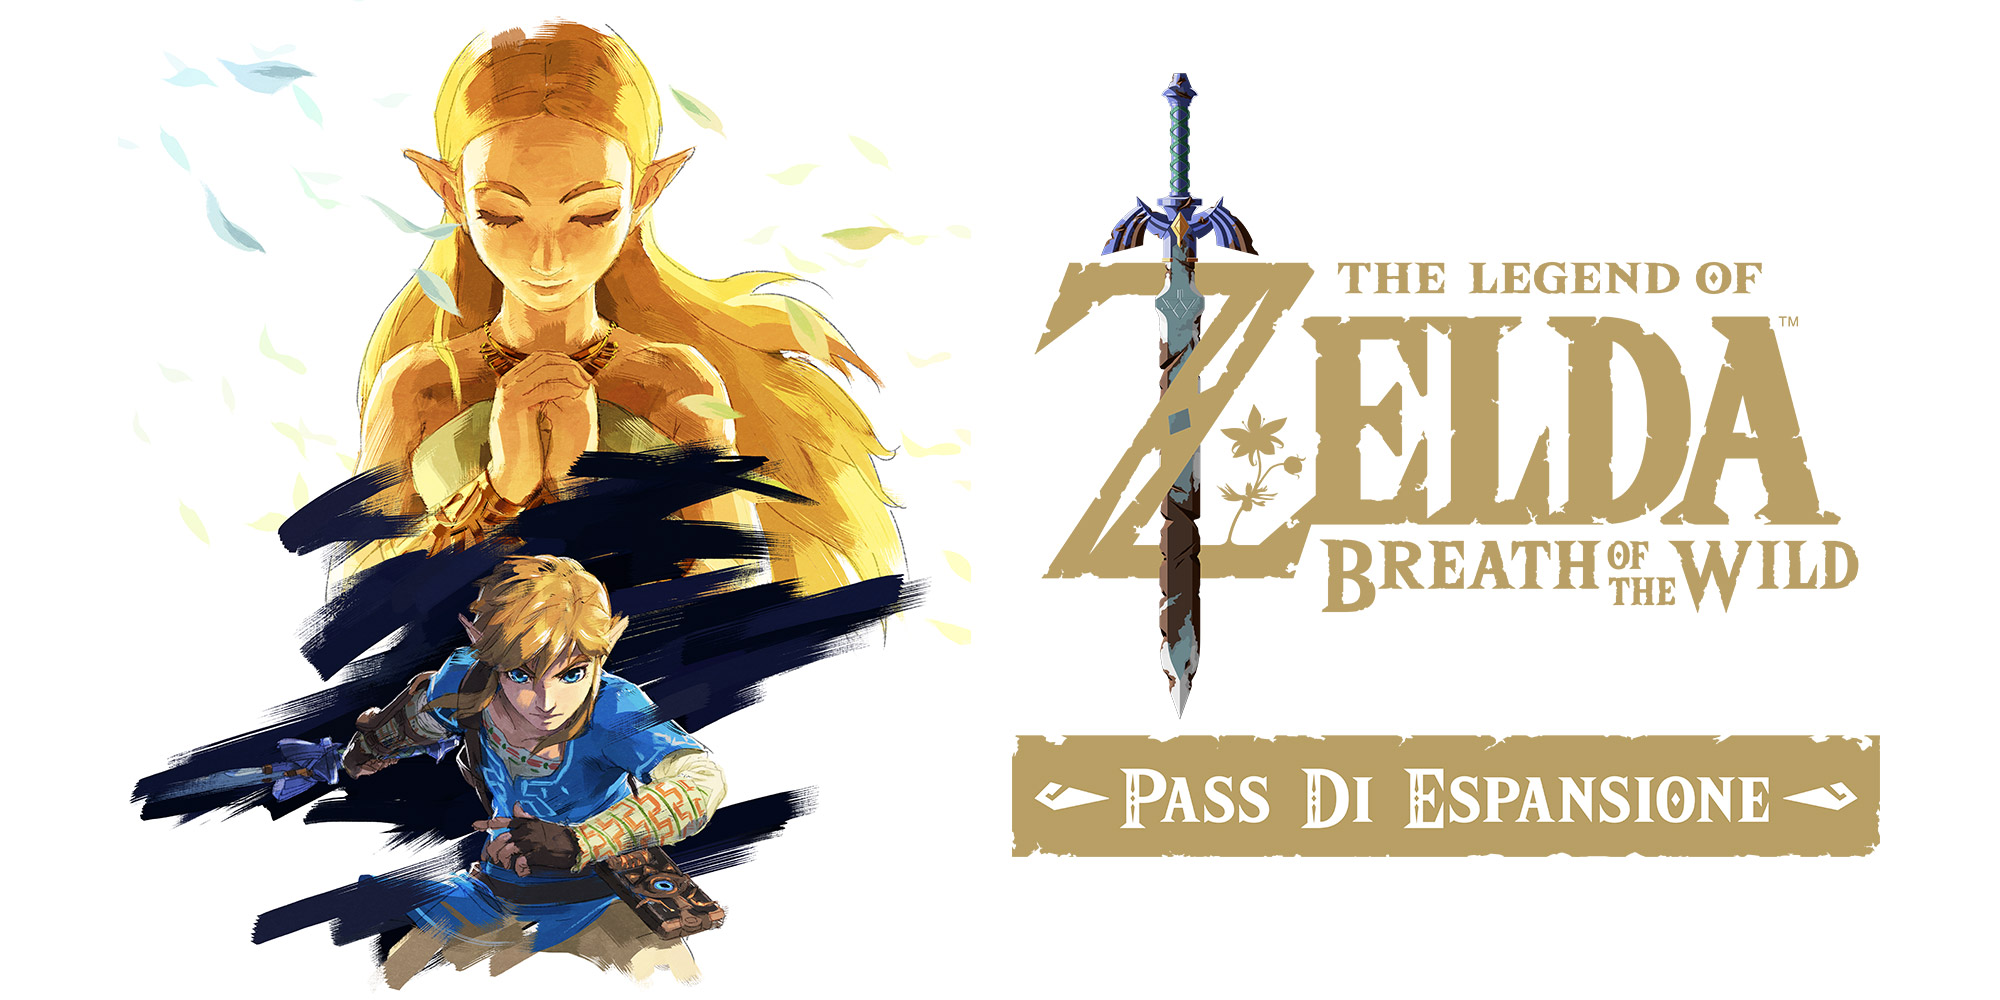 Svelato il DLC The Master Trials per The Legend of Zelda: Breath of the Wild!